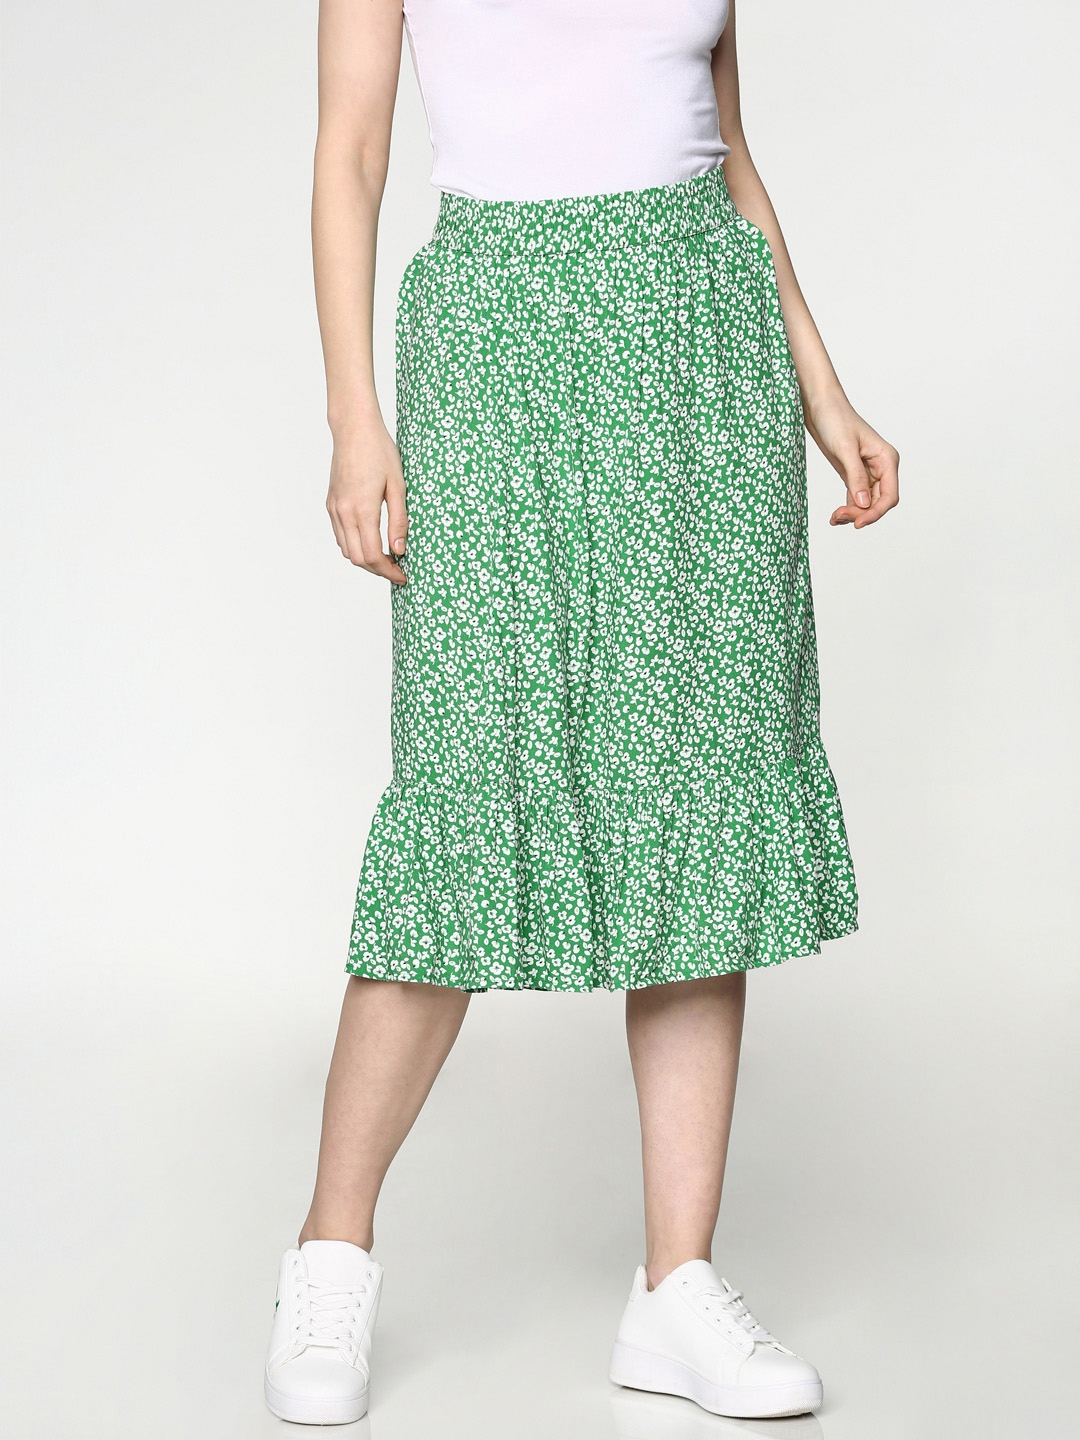 ONLY Women Green Printed A Line Skirt